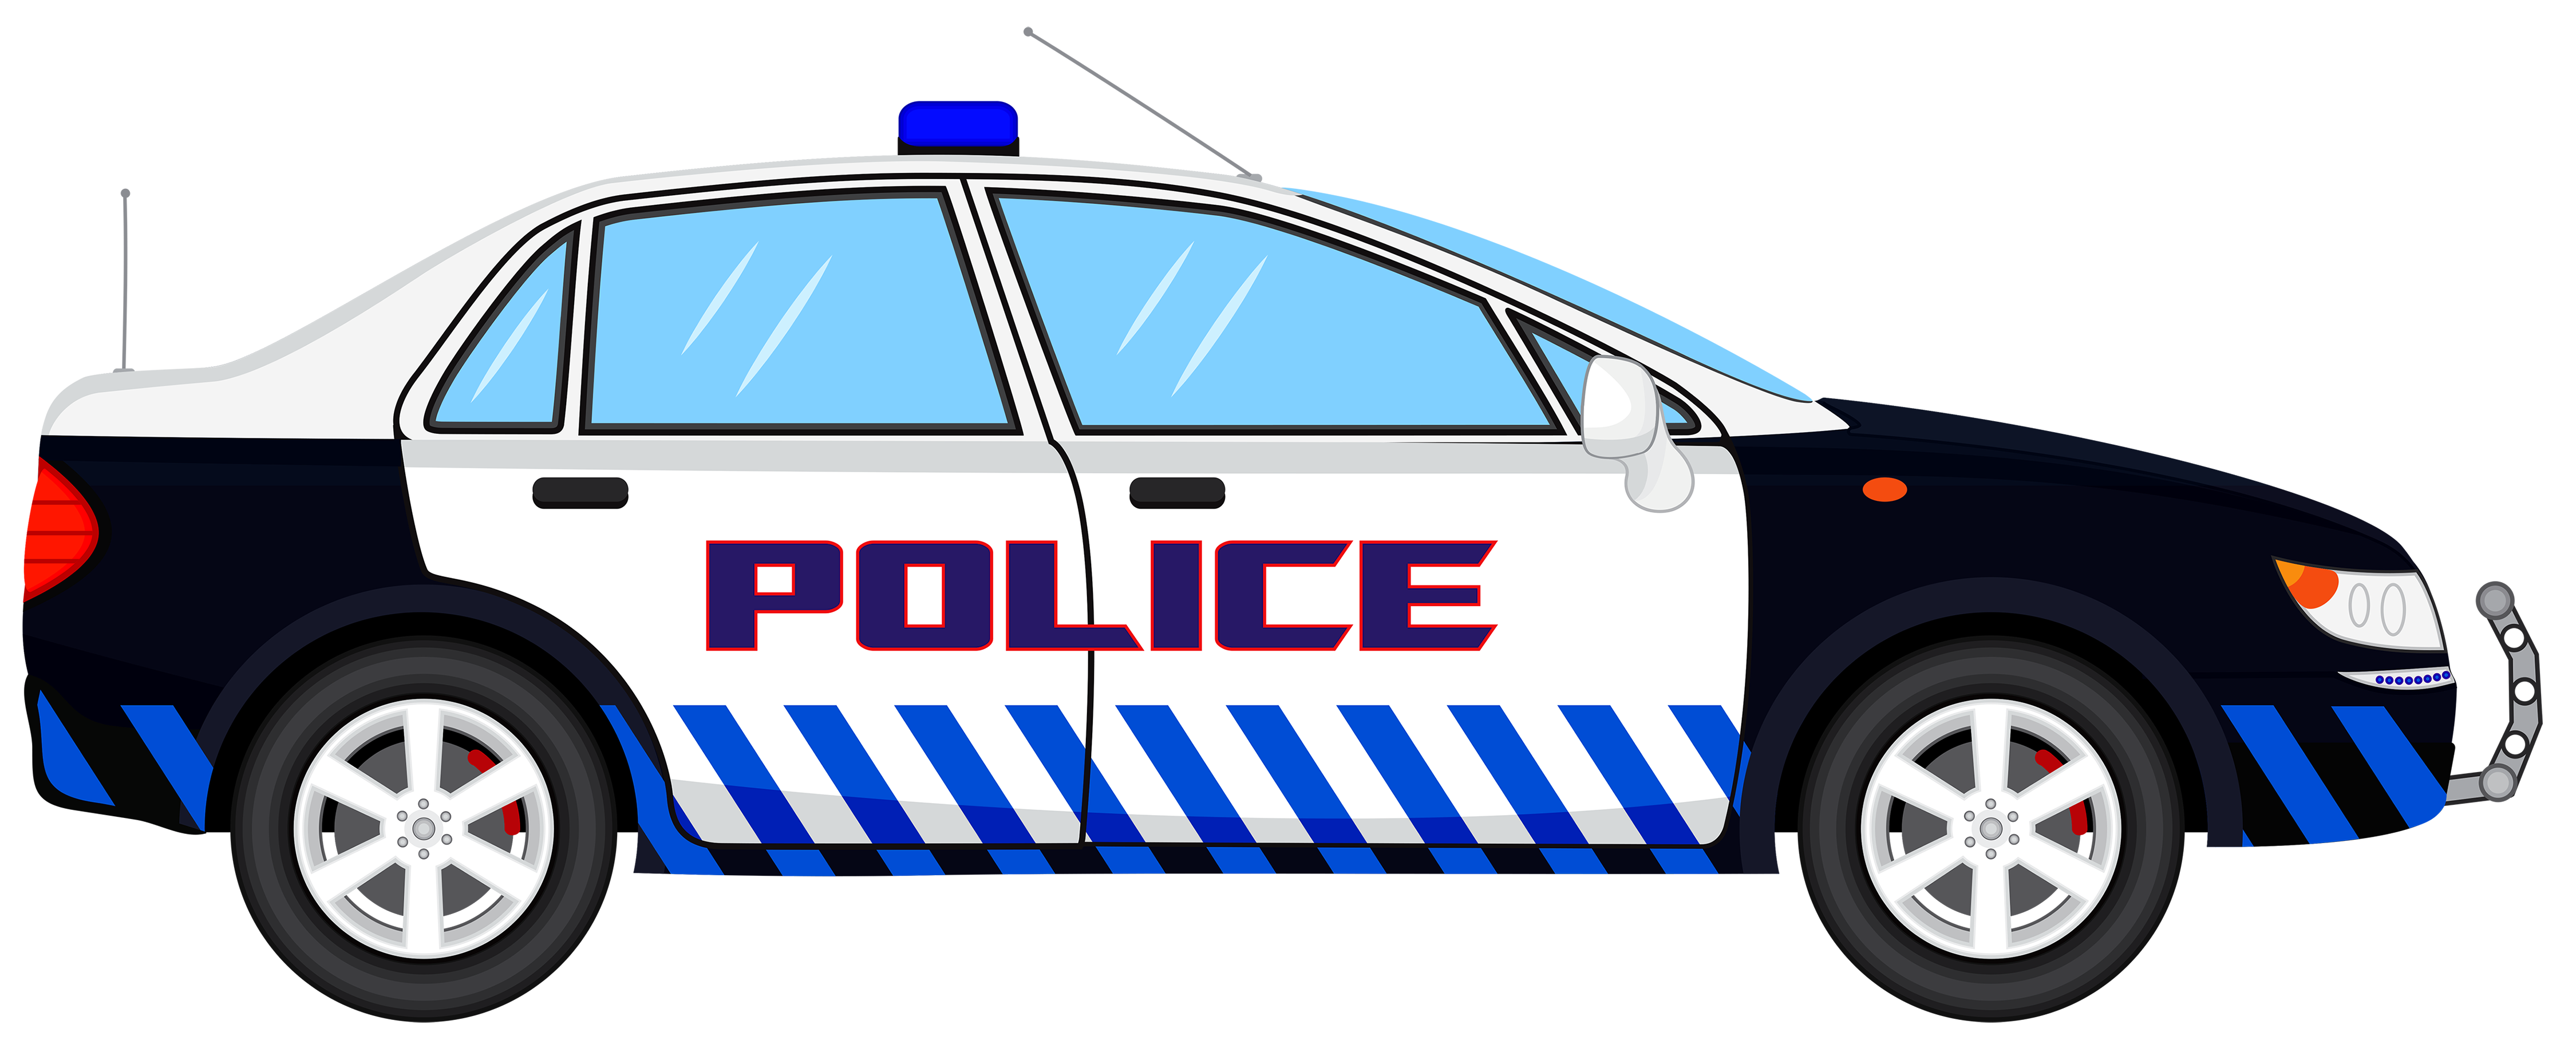 Car explosion clipart jpg freeuse stock Blue police car clipart - ClipartFest jpg freeuse stock